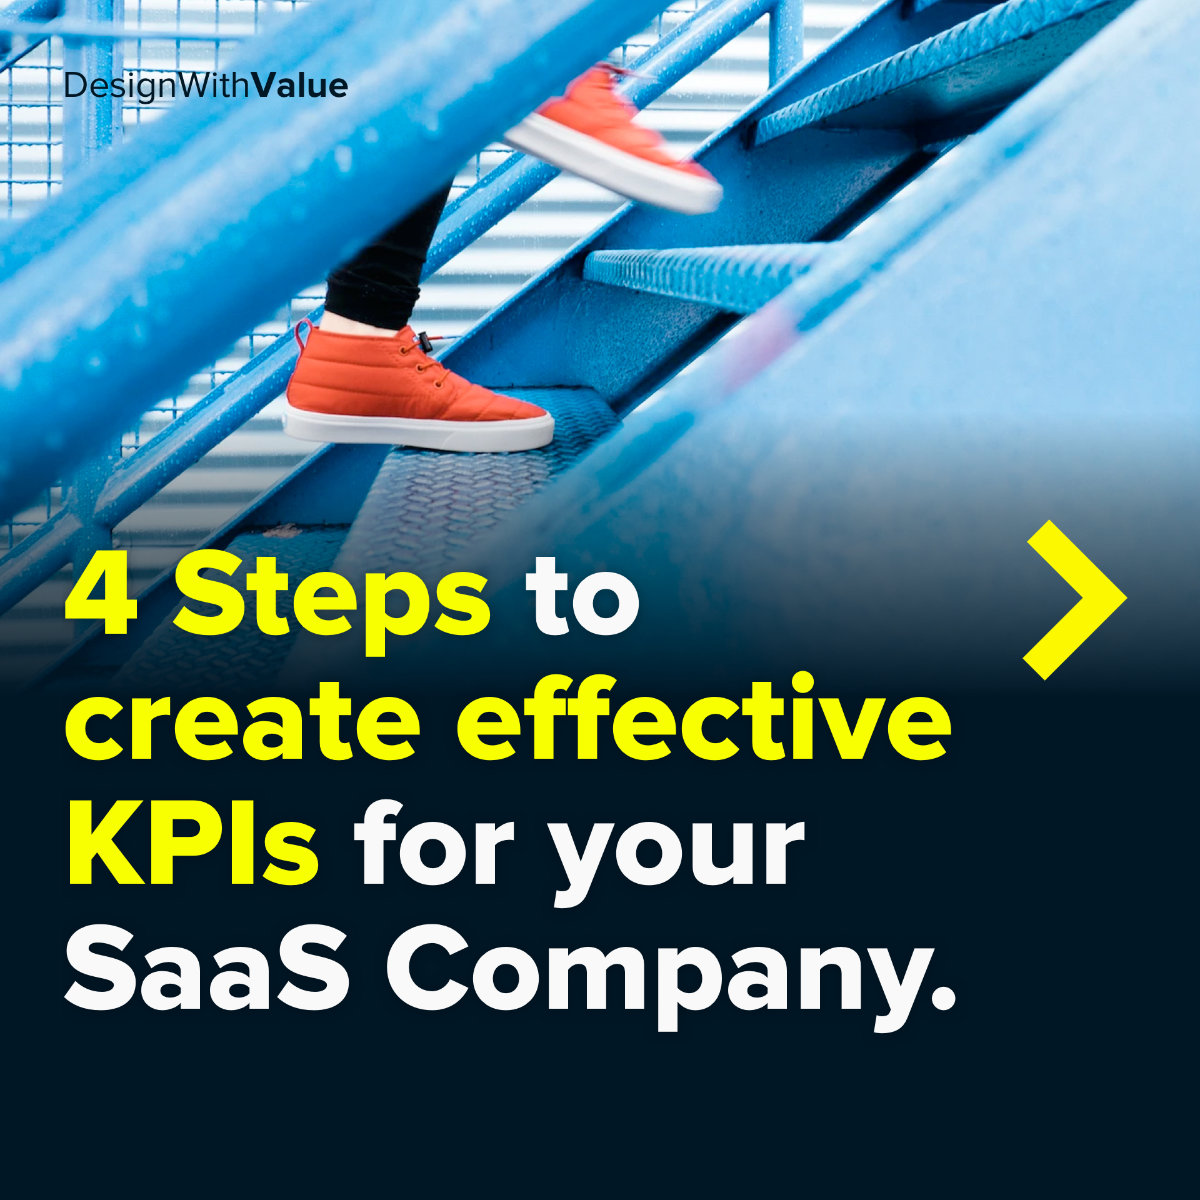 4 steps to create effective kpis for your saas company